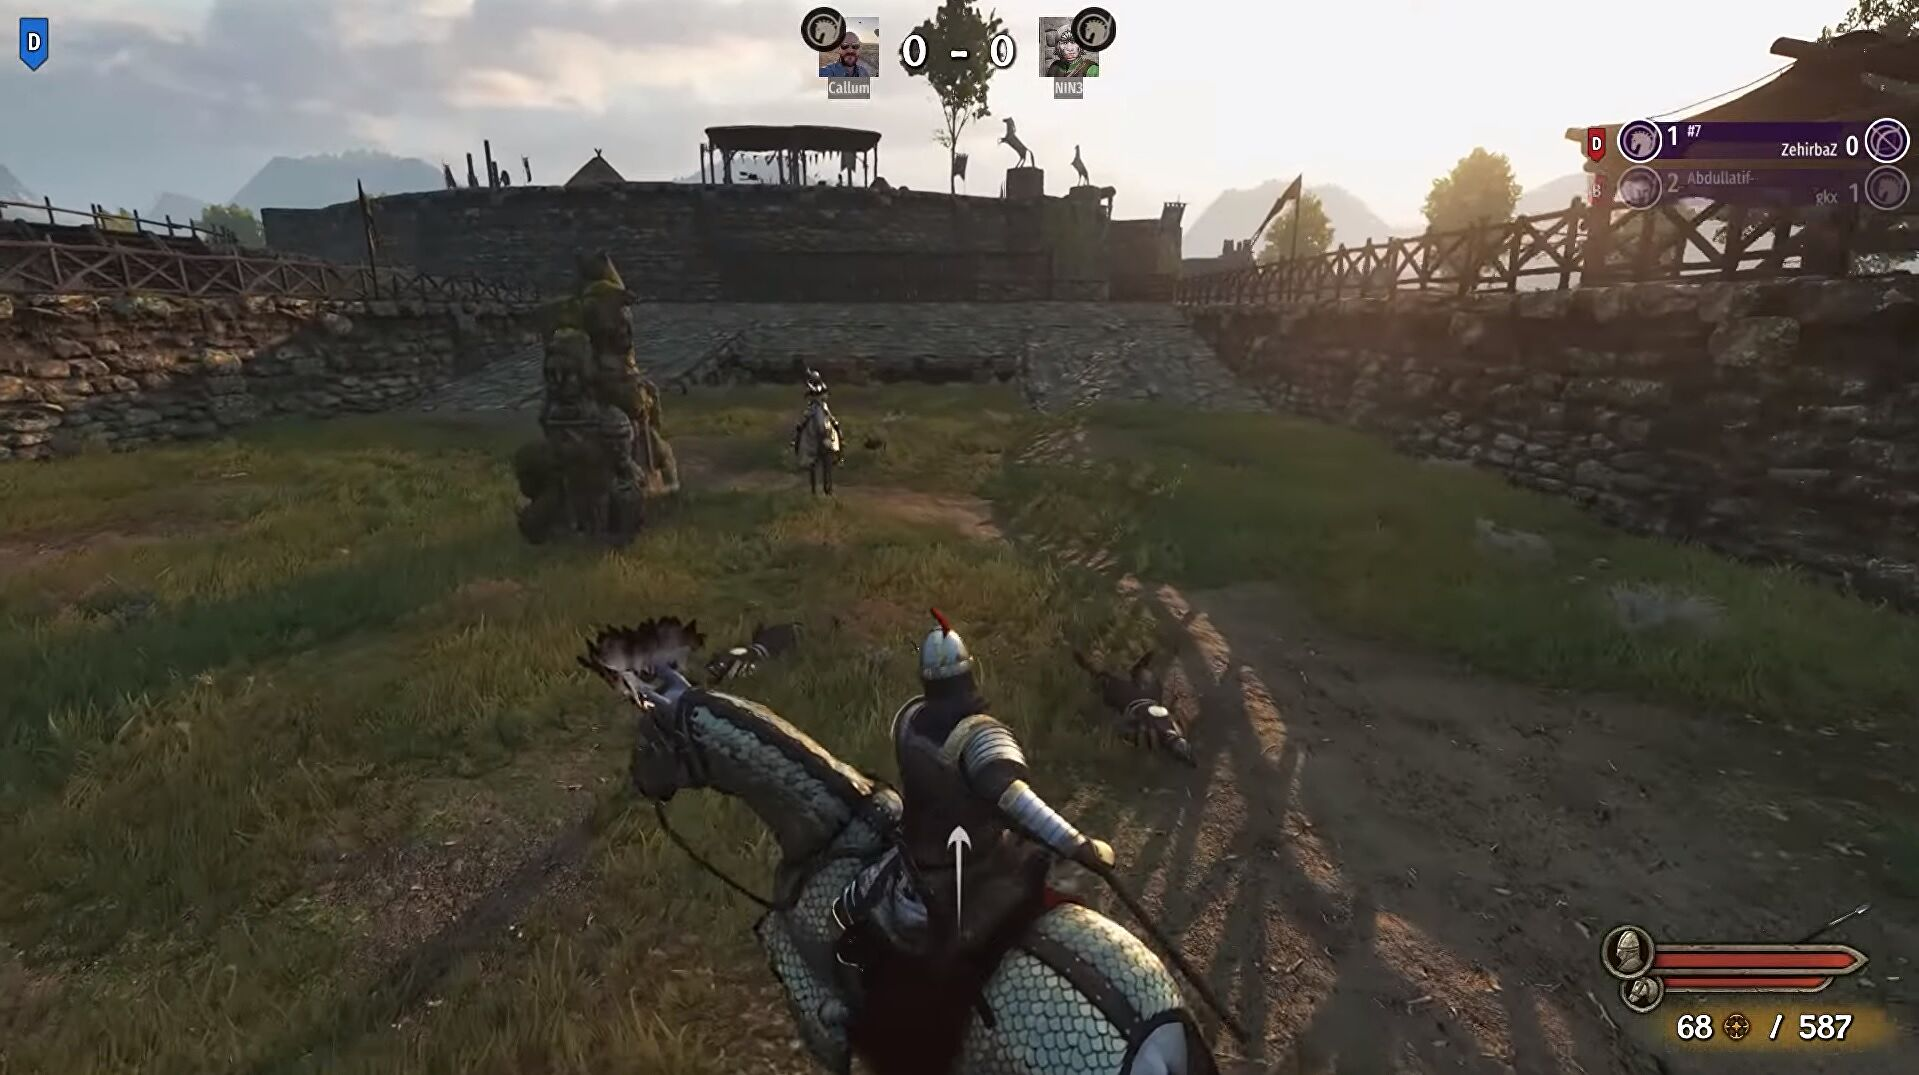 Mount & Blade 2: Bannerlord gears up for multiplayer duels